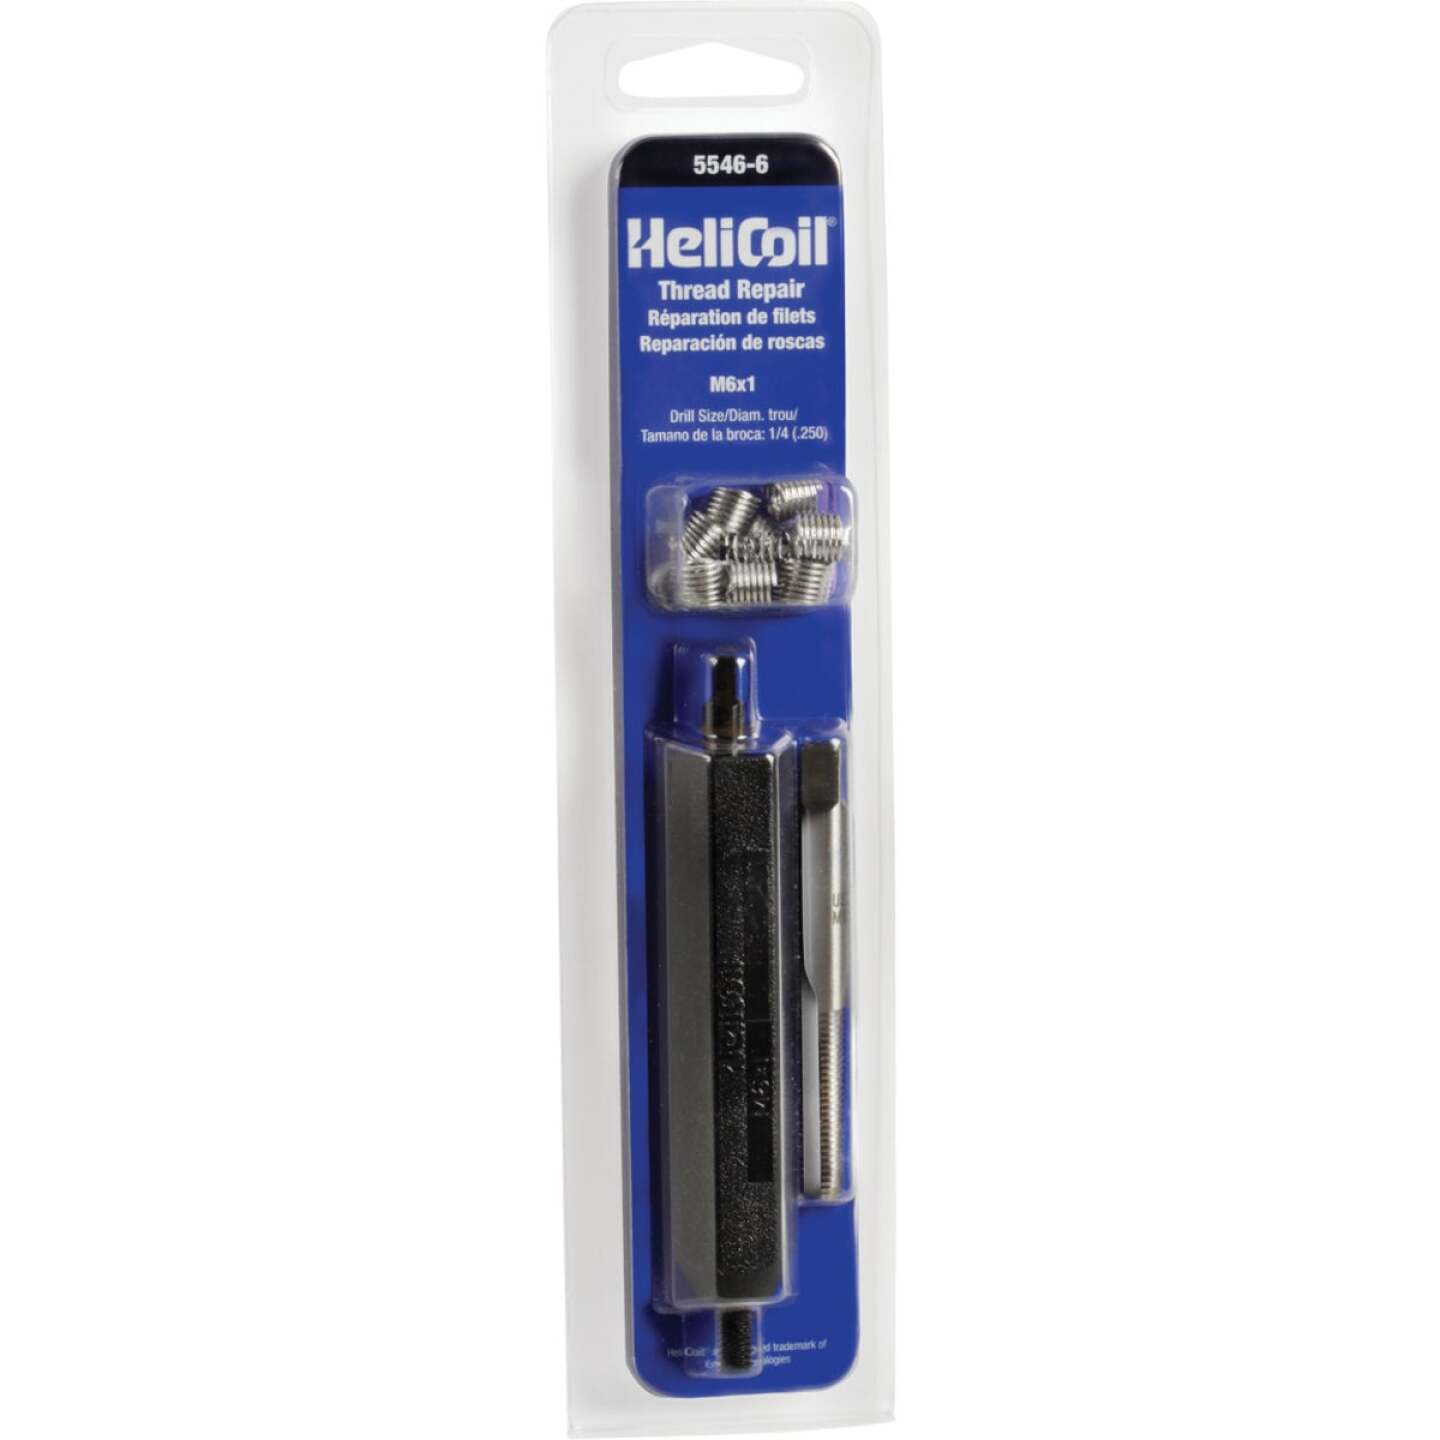 HeliCoil M6 x 1 Stainless Steel Thread Repair Kit Image 1